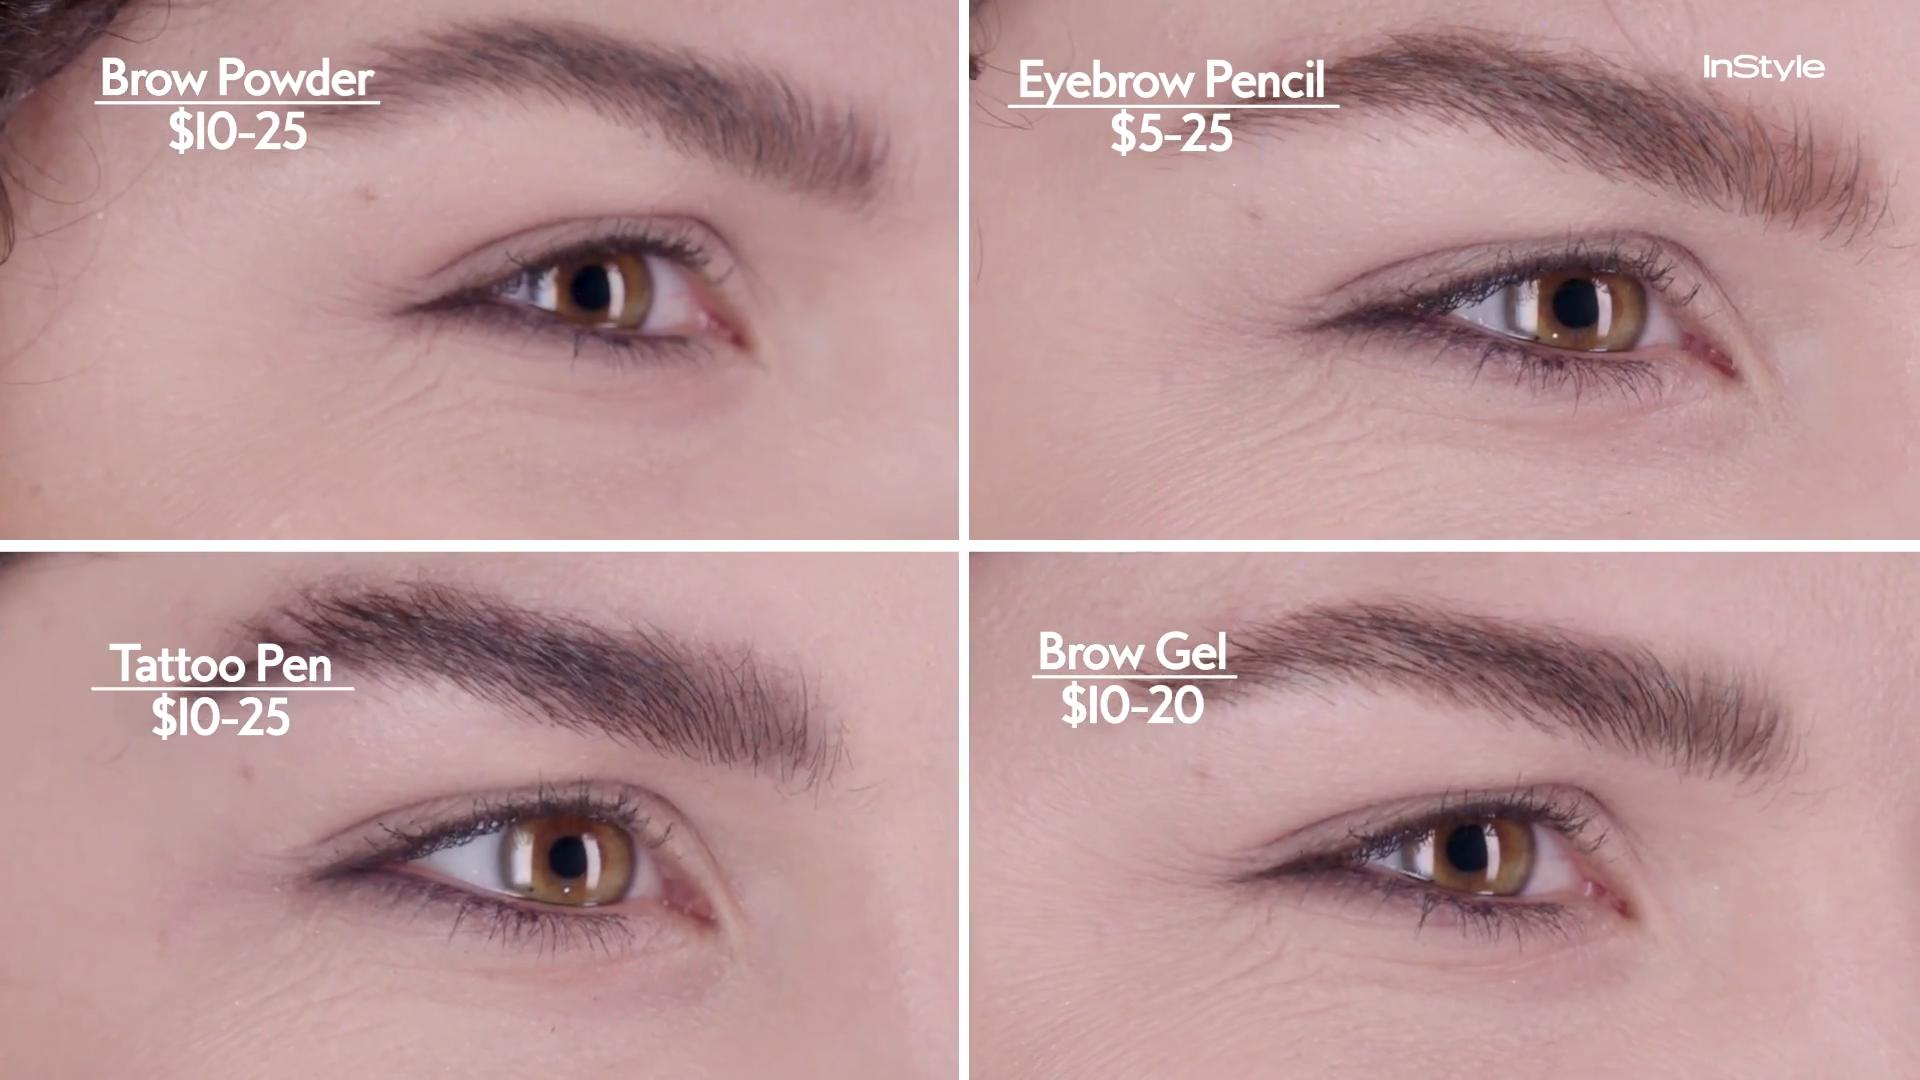 c49fe21dc46 Eyebrow Growth Products | InStyle.com